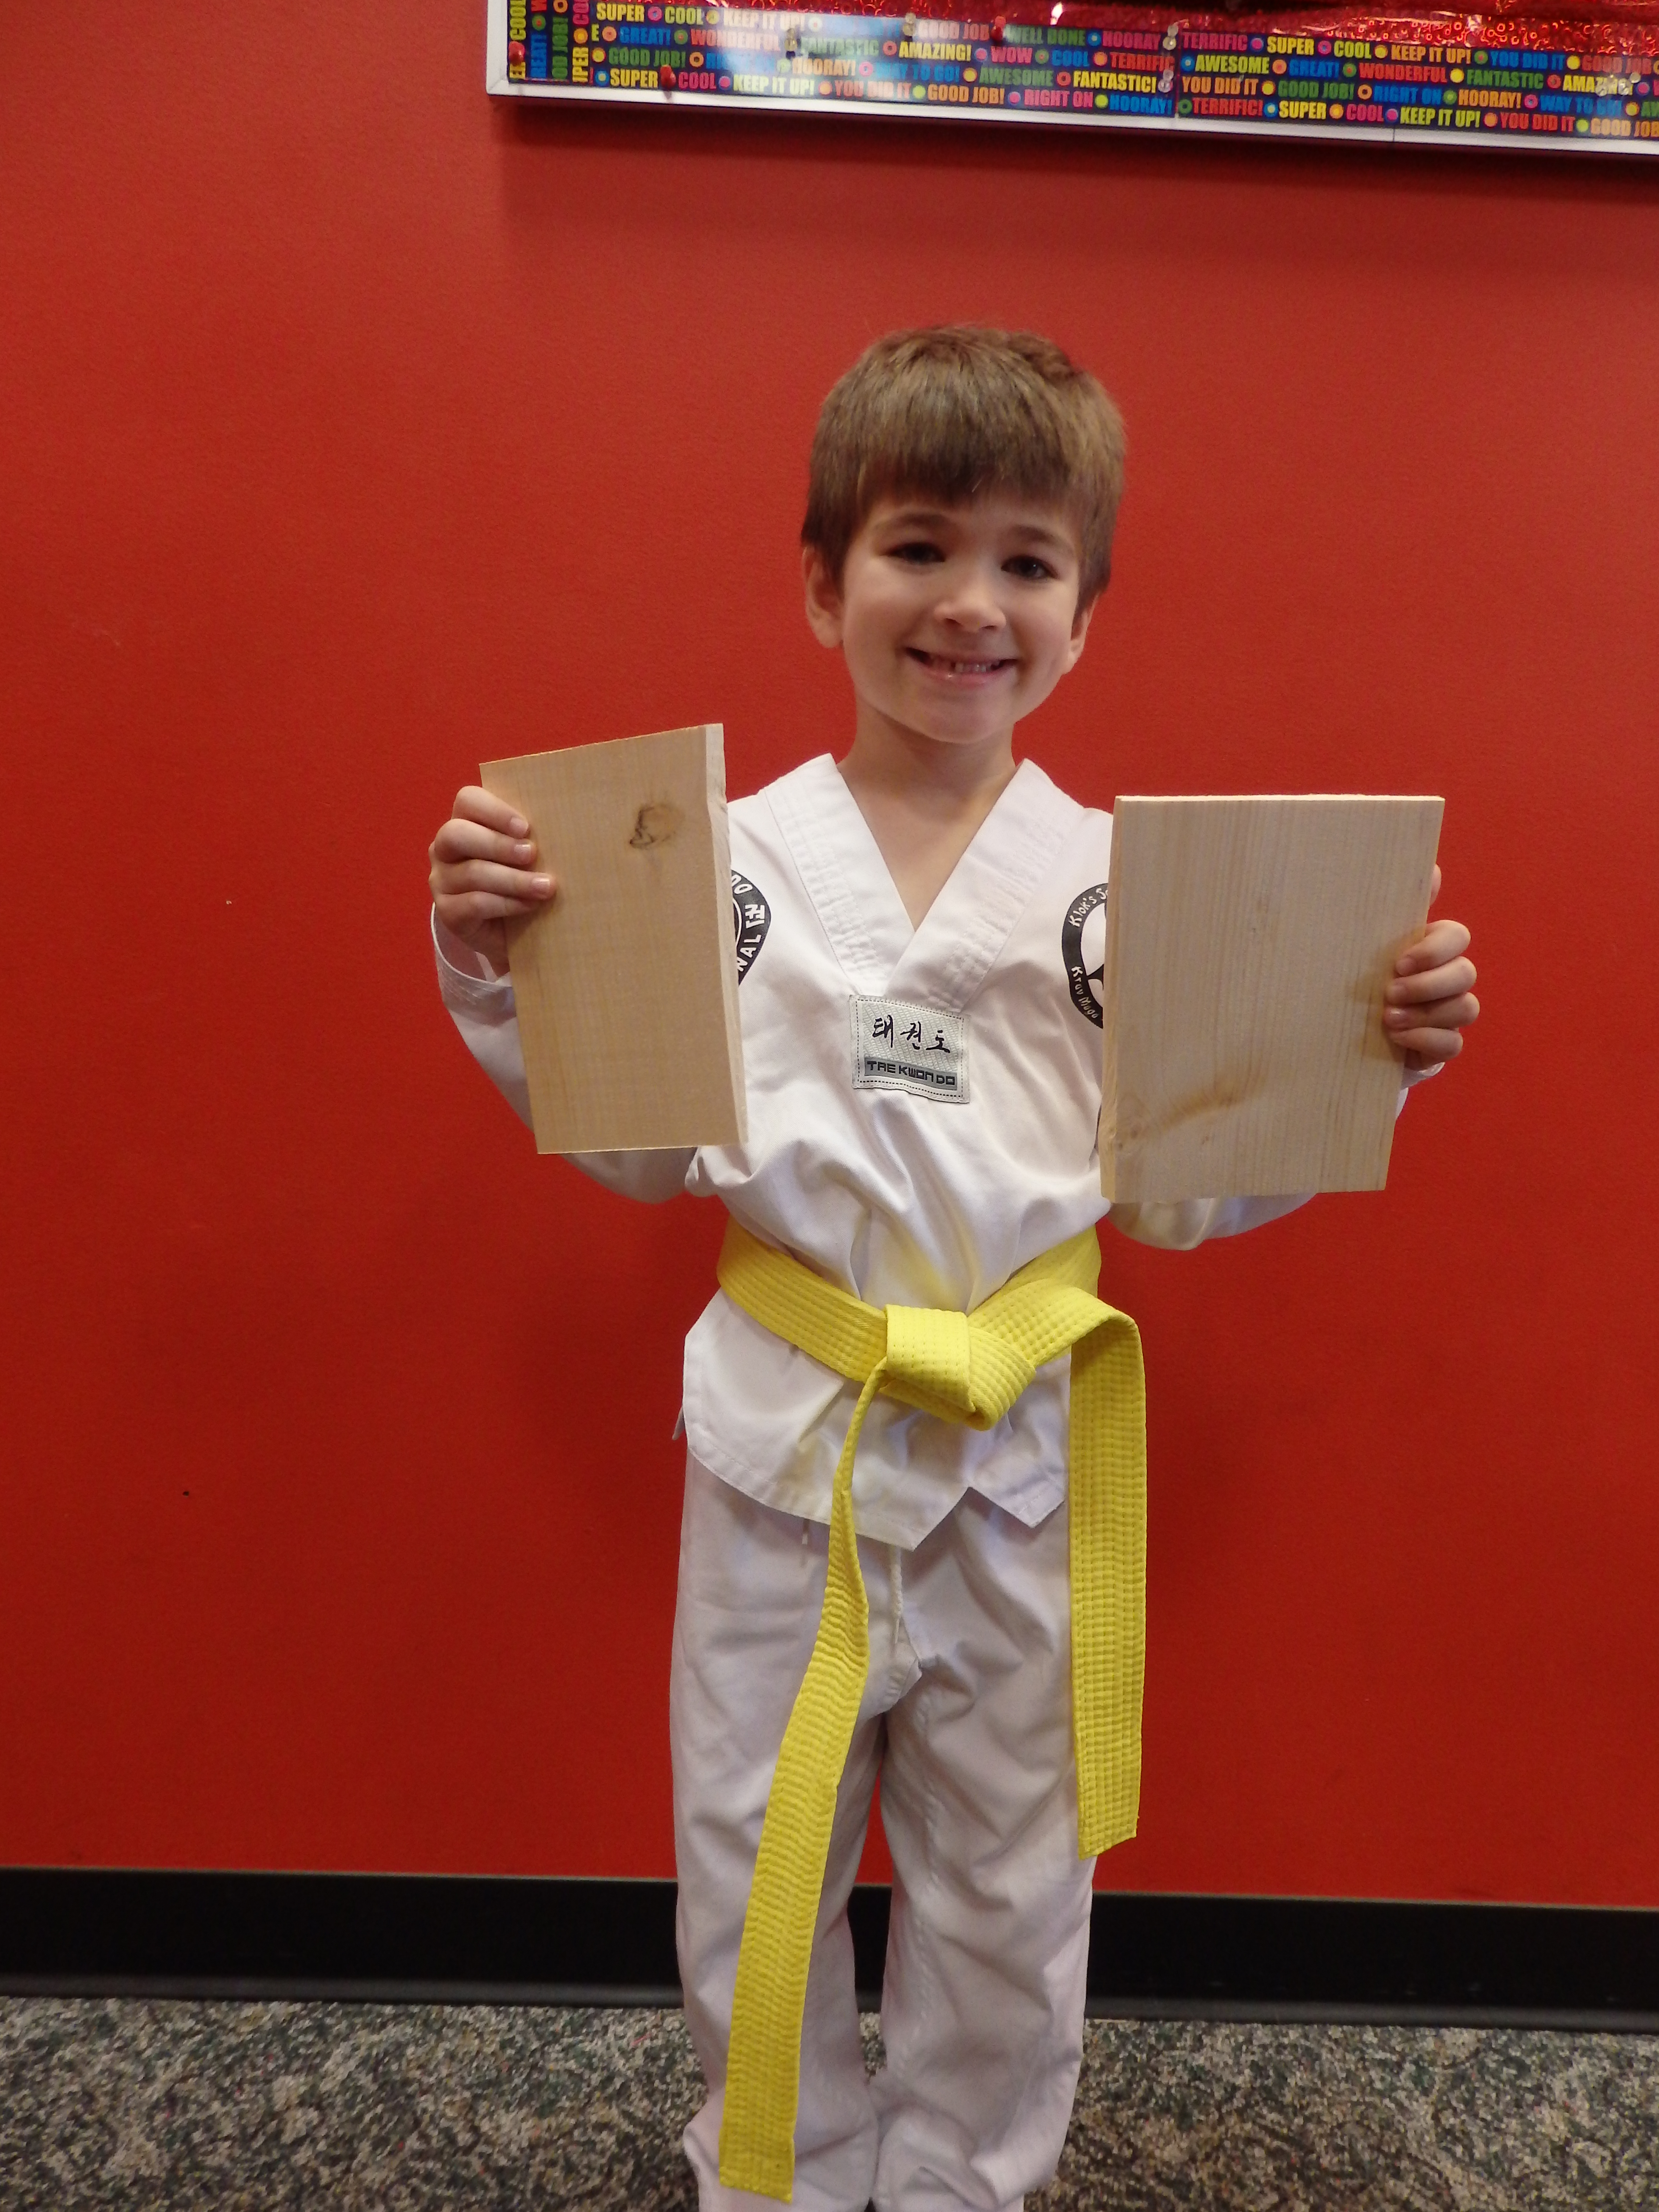 Quest Student Moves Up IN Tae Kwon Do